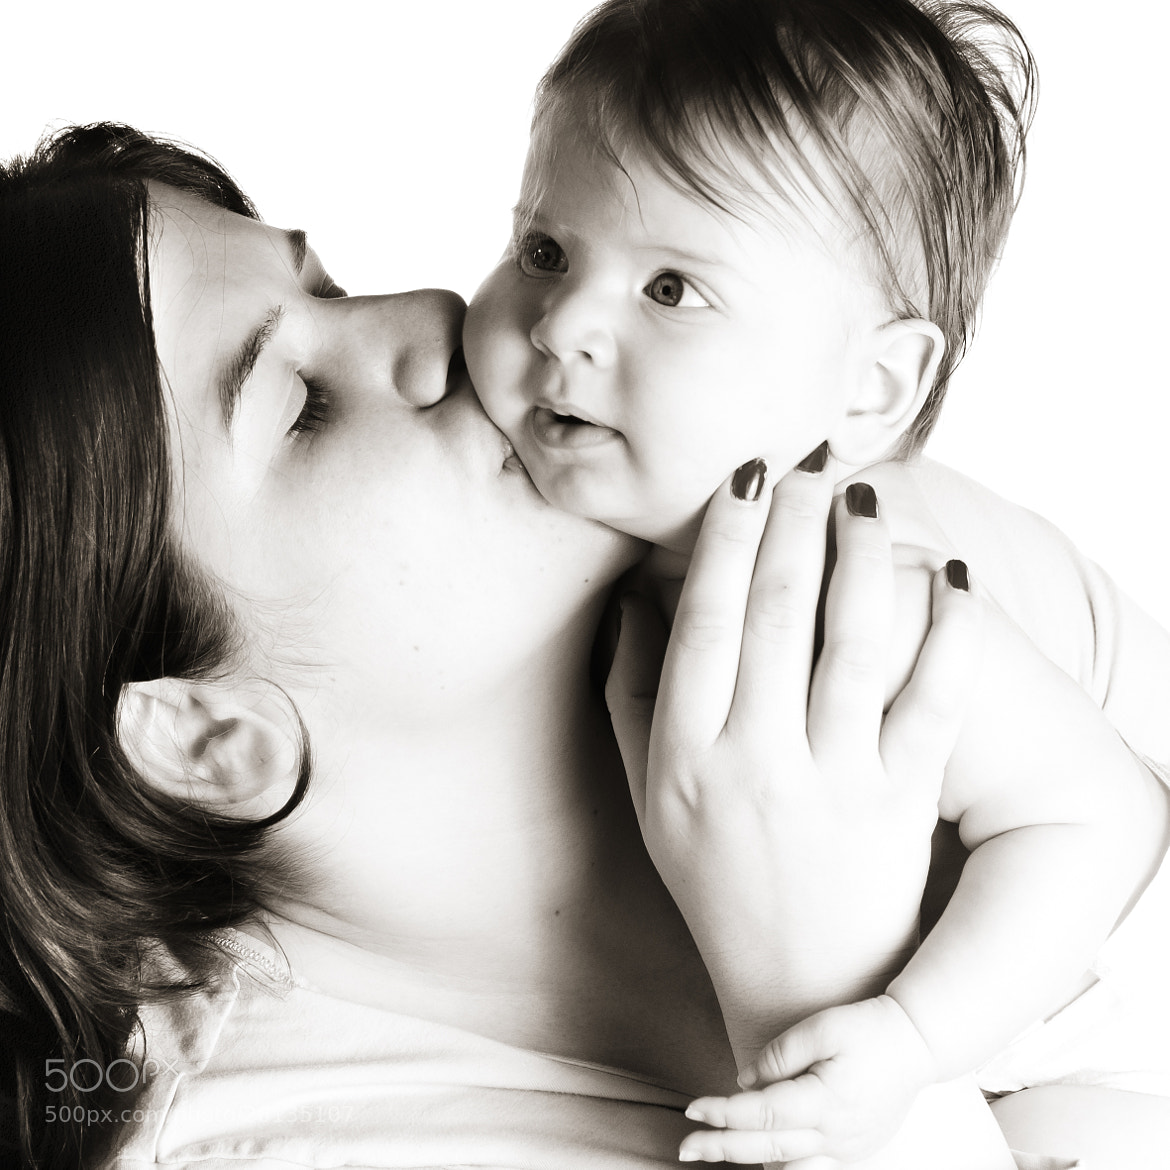 Photograph mother's love by itsik madjar on 500px